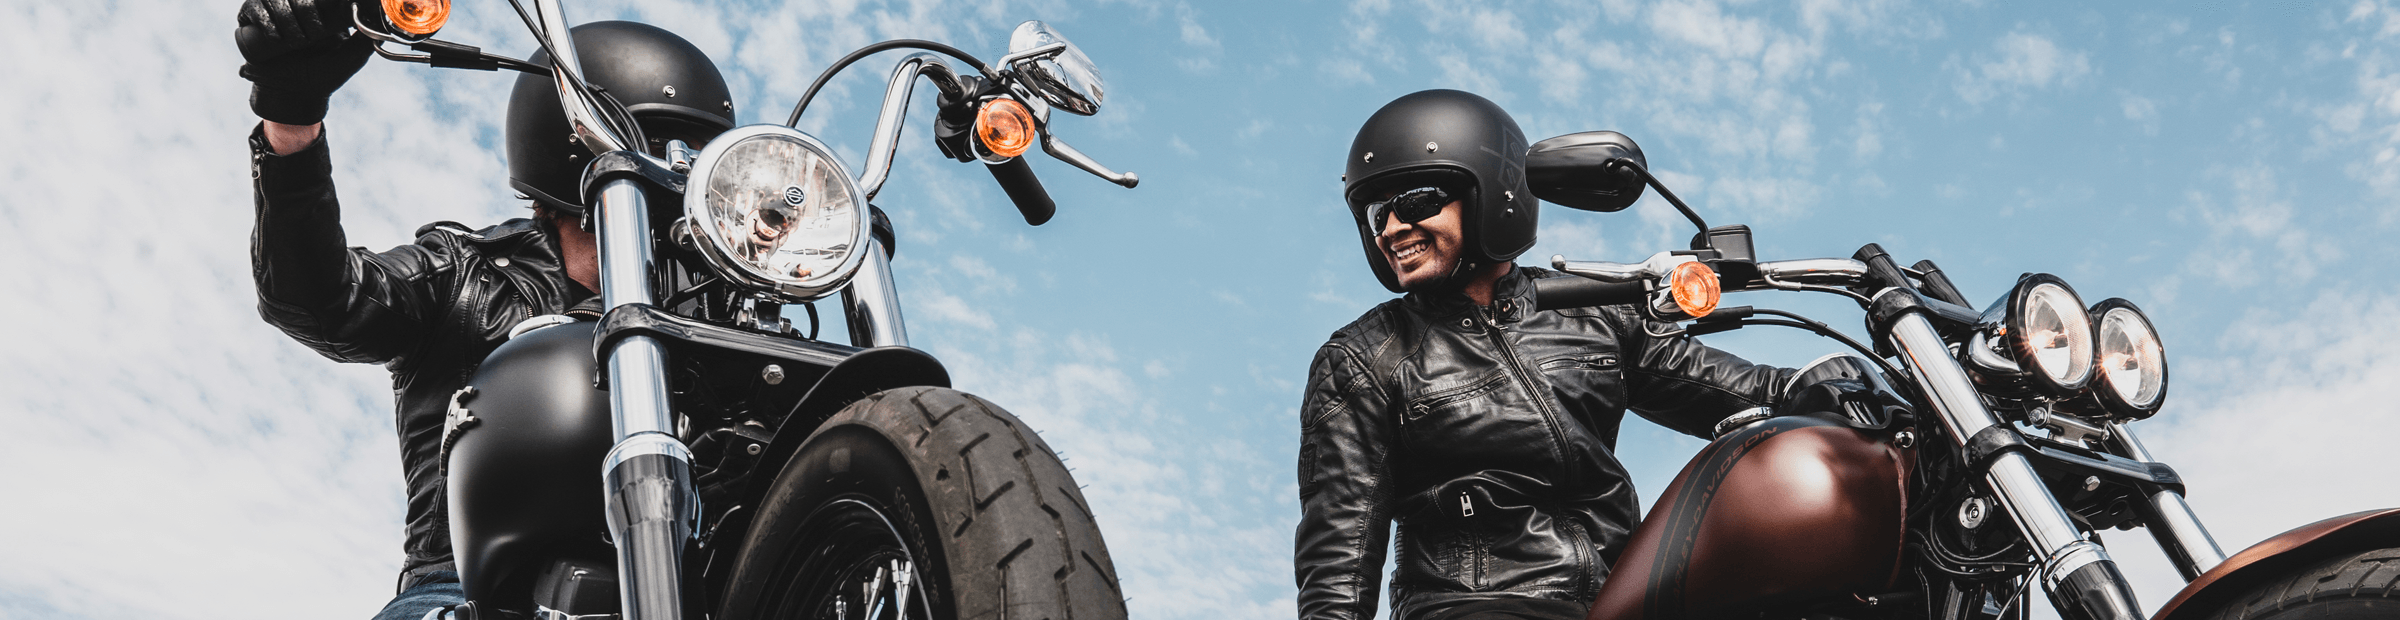 New Inventory at Farrow East Harley-Davidson®